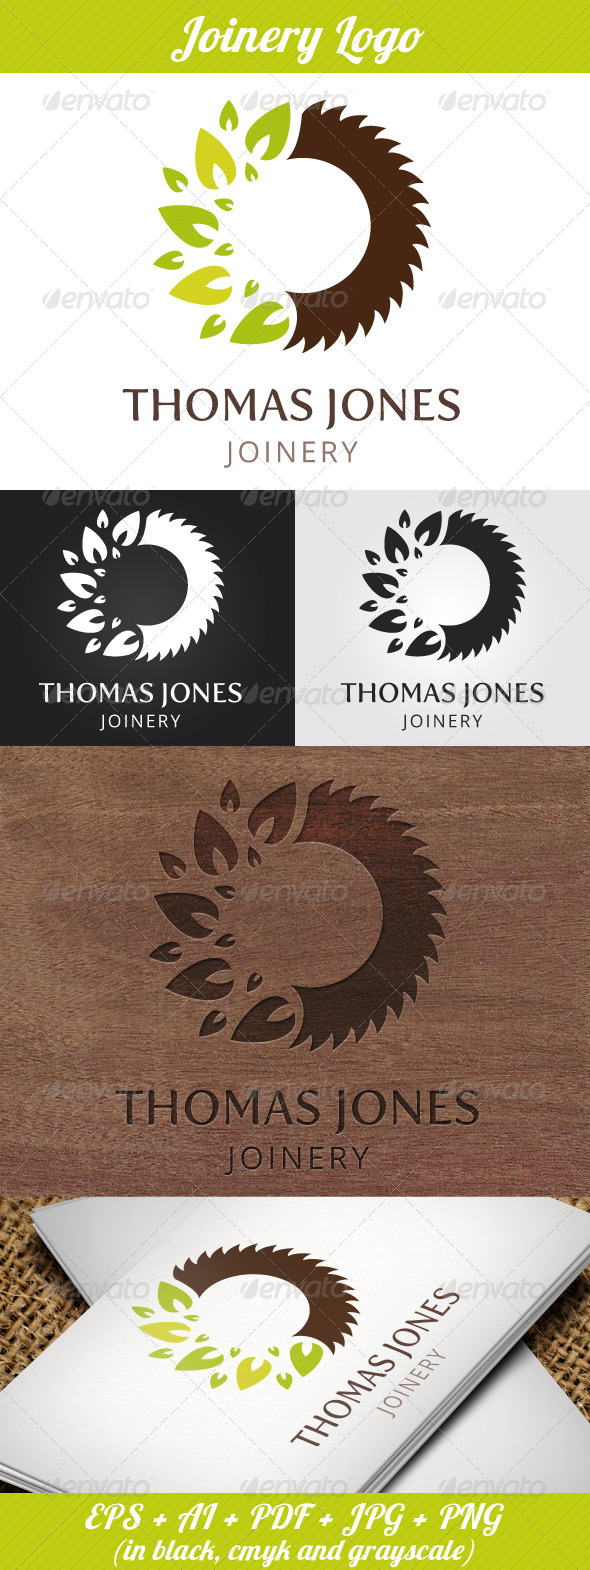 GraphicRiver Joinery Logo 5100811